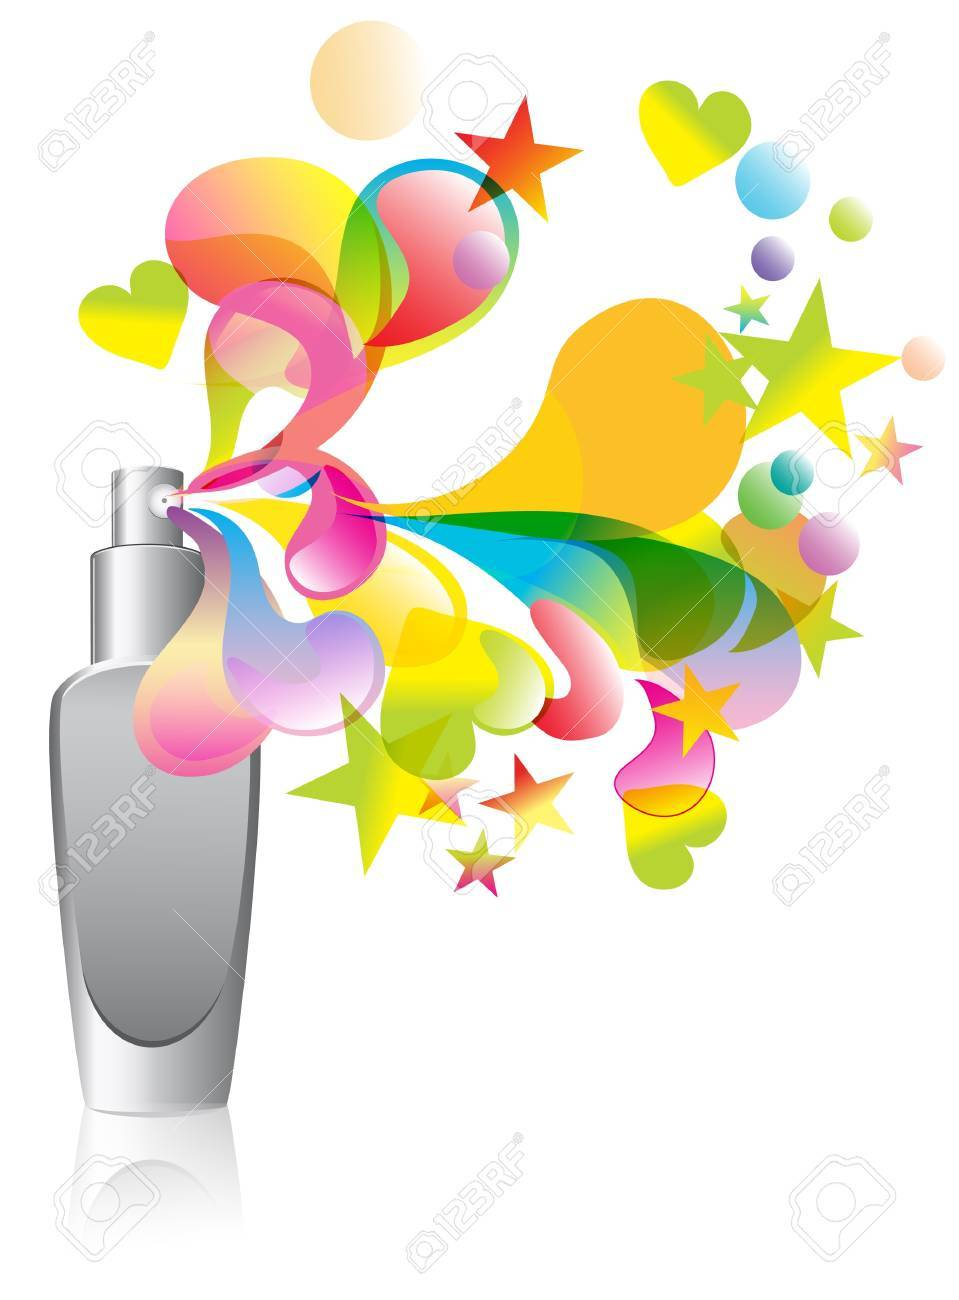 Background with cosmetic bottle splash over white Stock Vector - 12008636